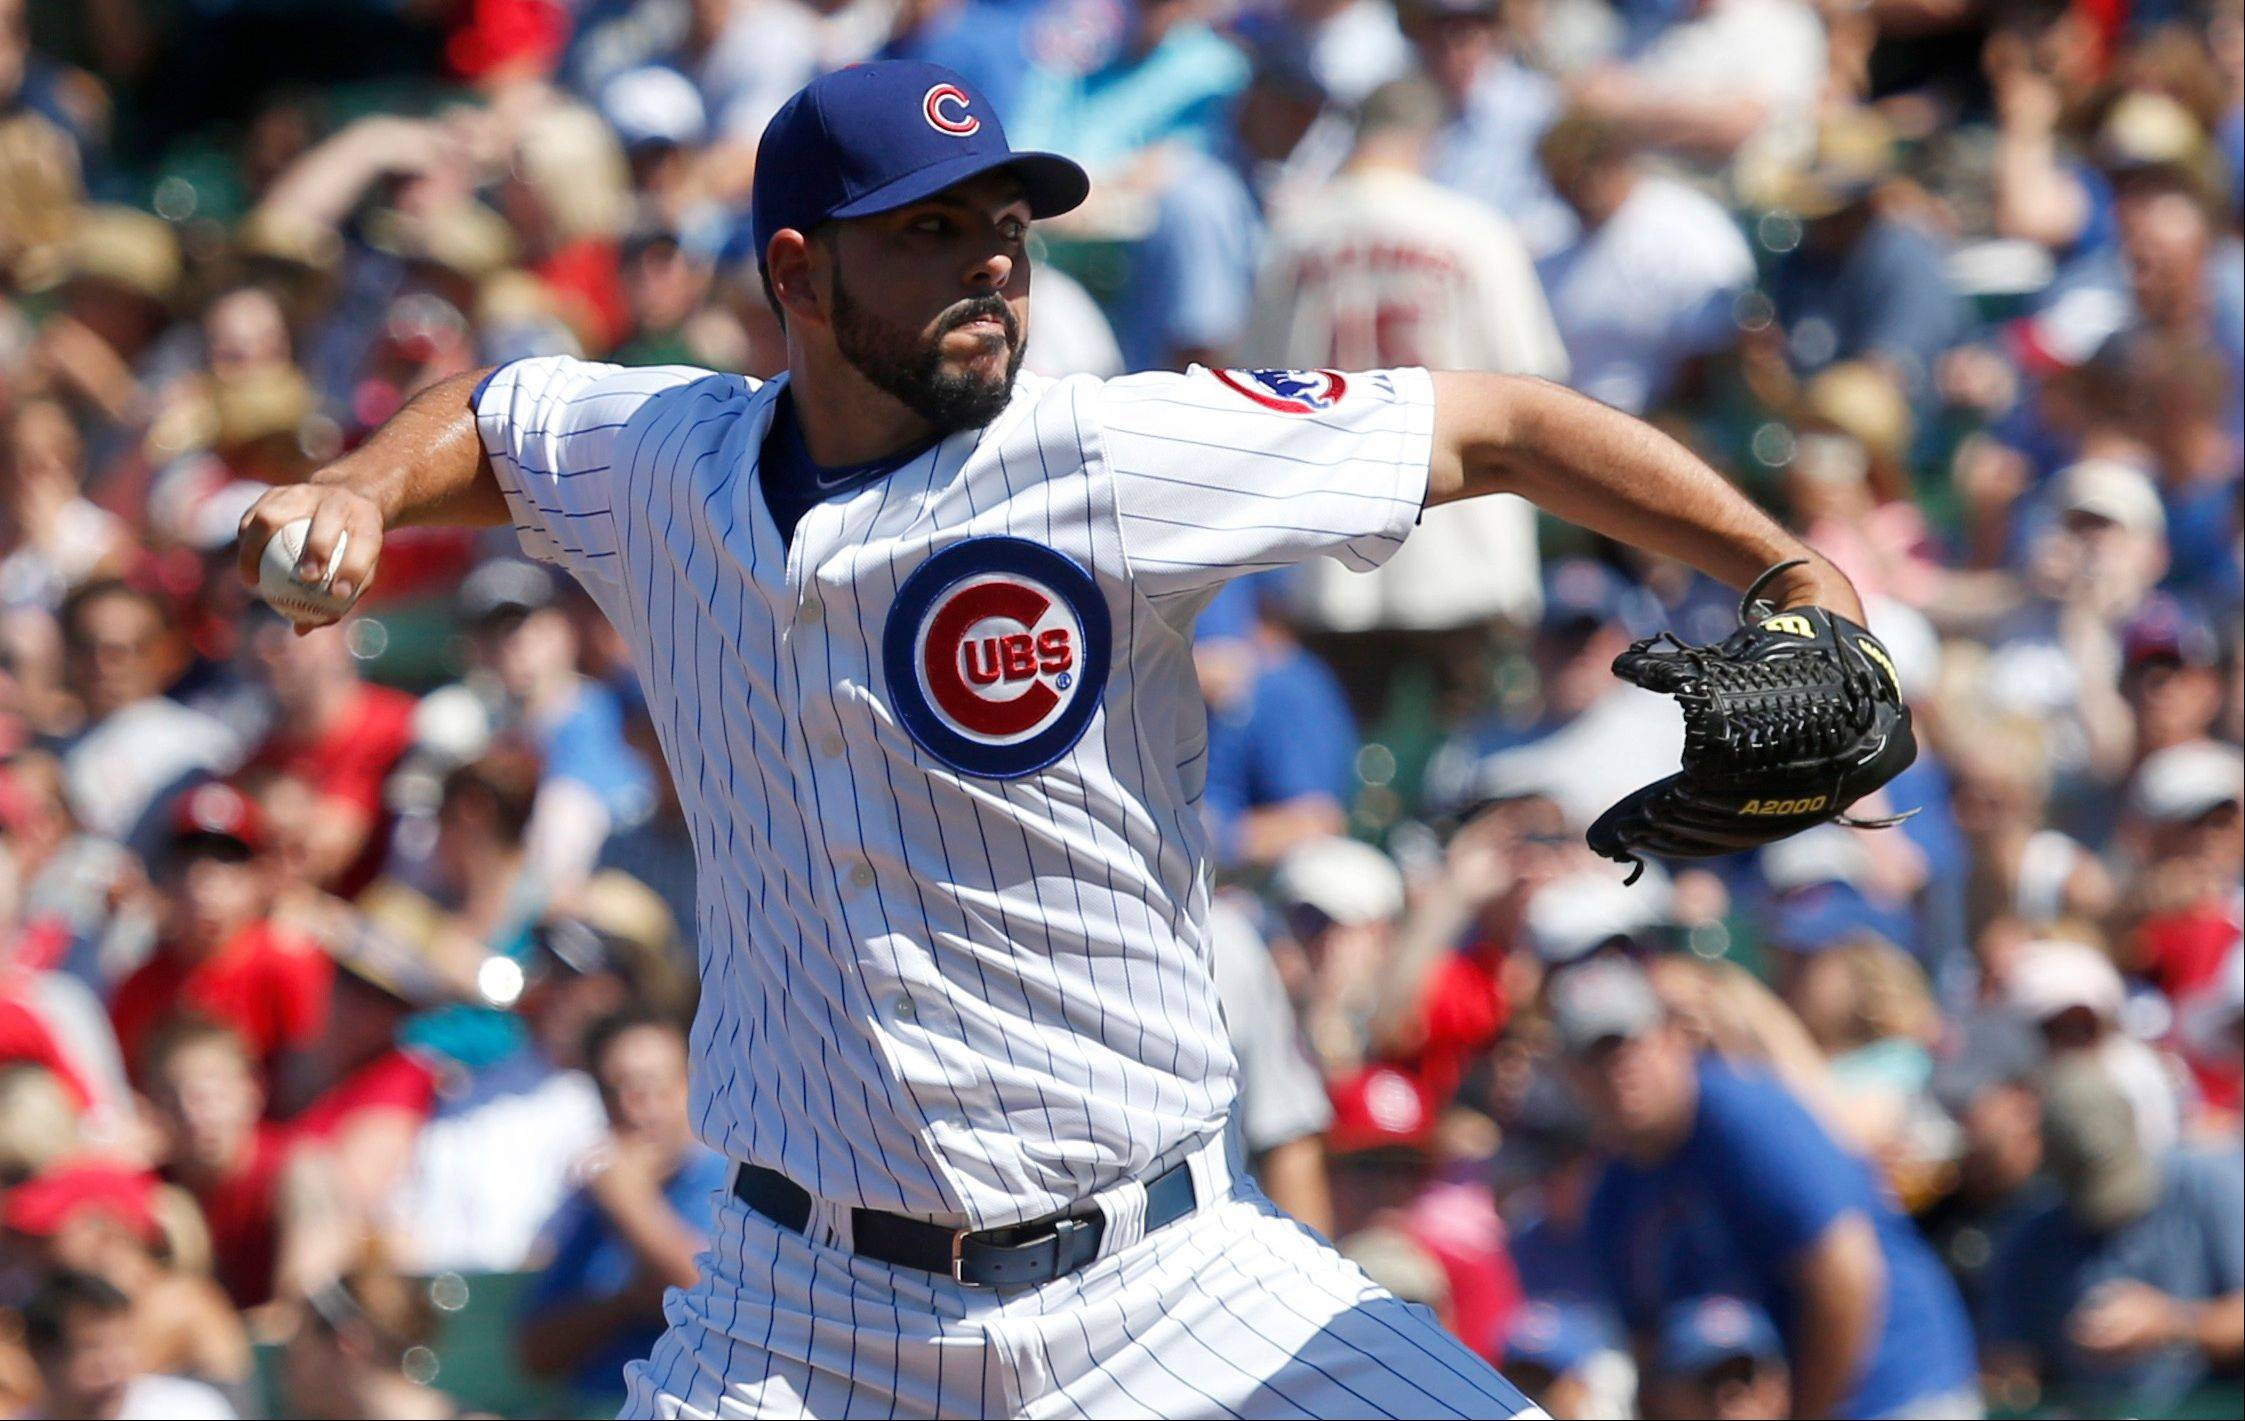 Carlos Villanueva threw 6 innings and allowed just 2 runs on 4 hits during the Cubs' loss to St. Louis on Friday.